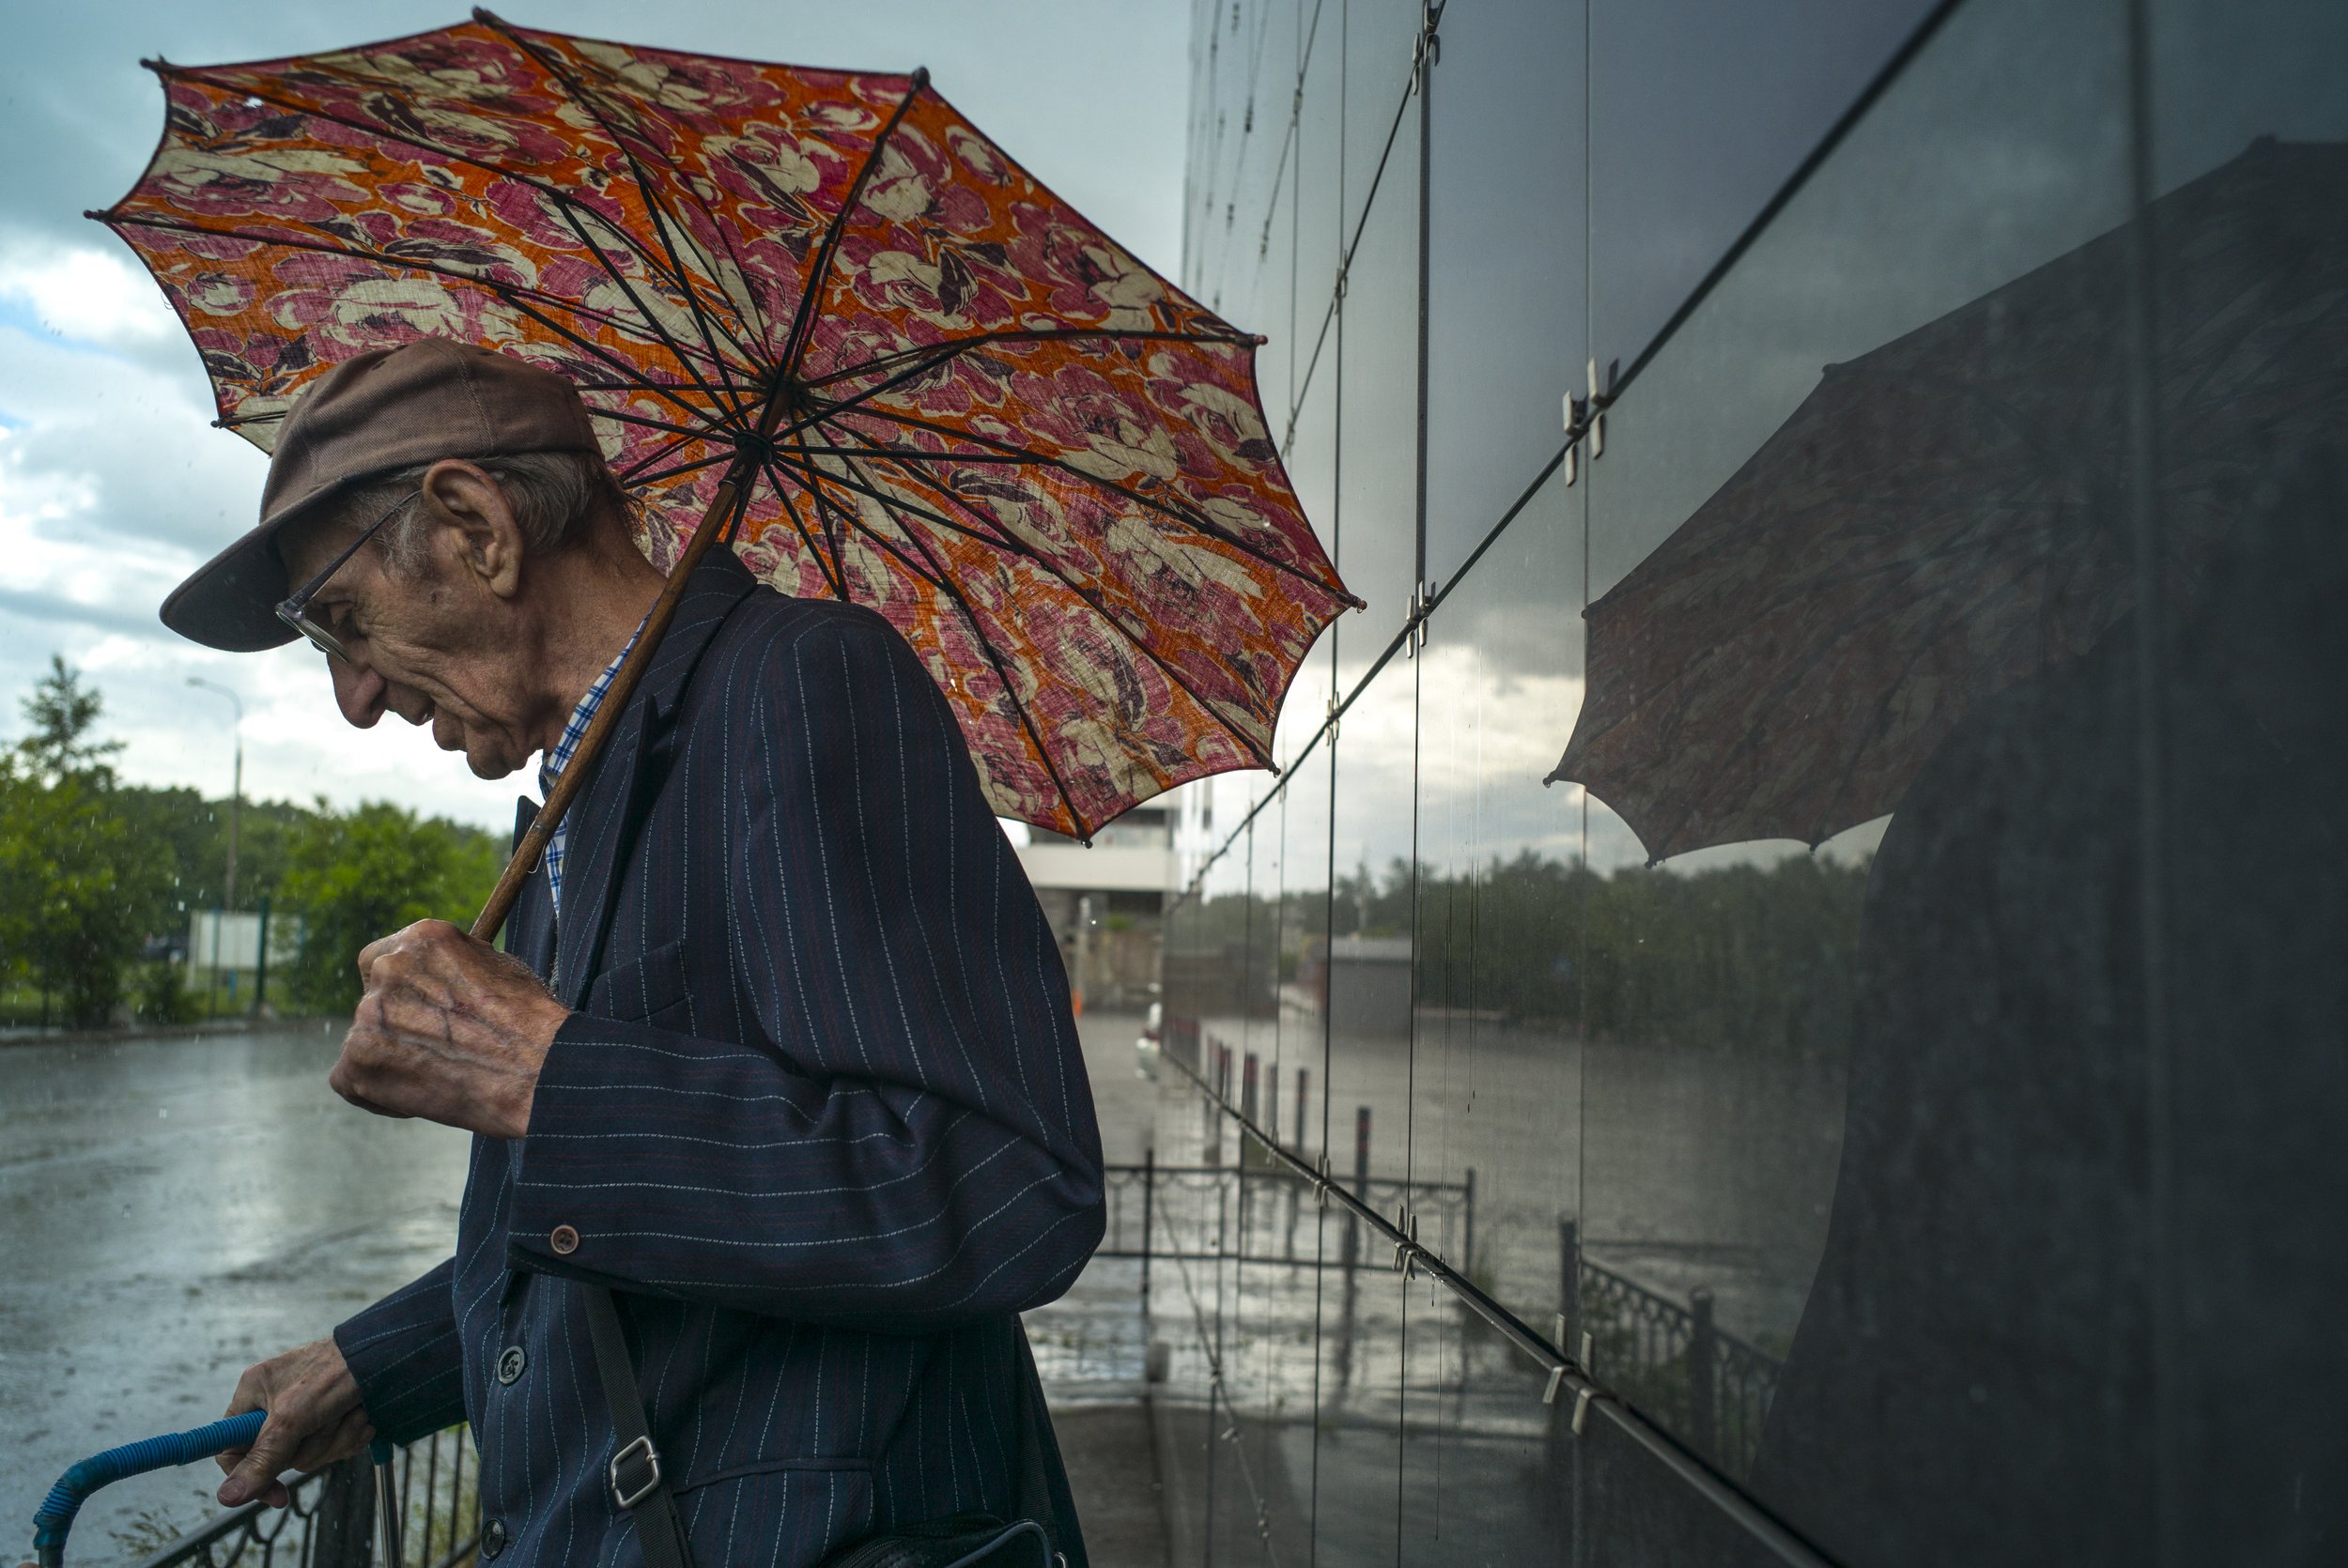 Rain beats down as a man rests while on his way to the Izmailovsky flea market in Russia on June 5, 2015. (© Alicia Afshar)